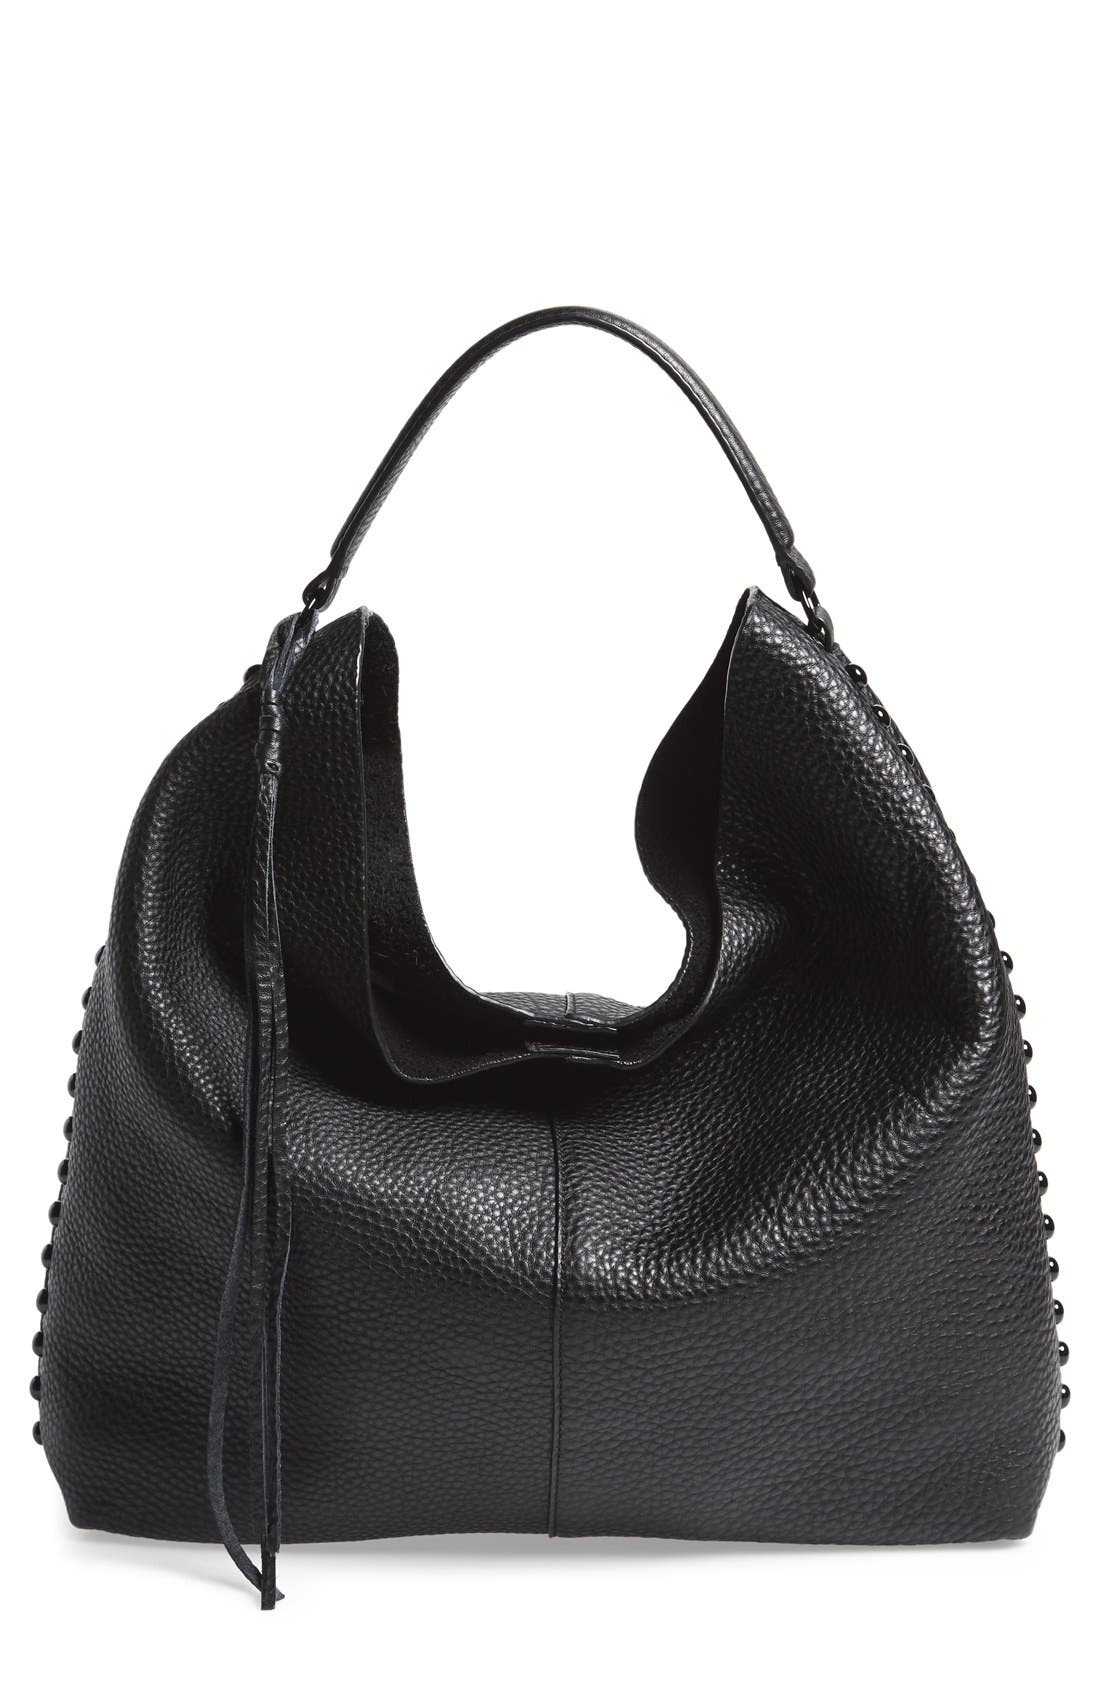 Alternate Image 1 Selected - Rebecca Minkoff Unlined Hobo